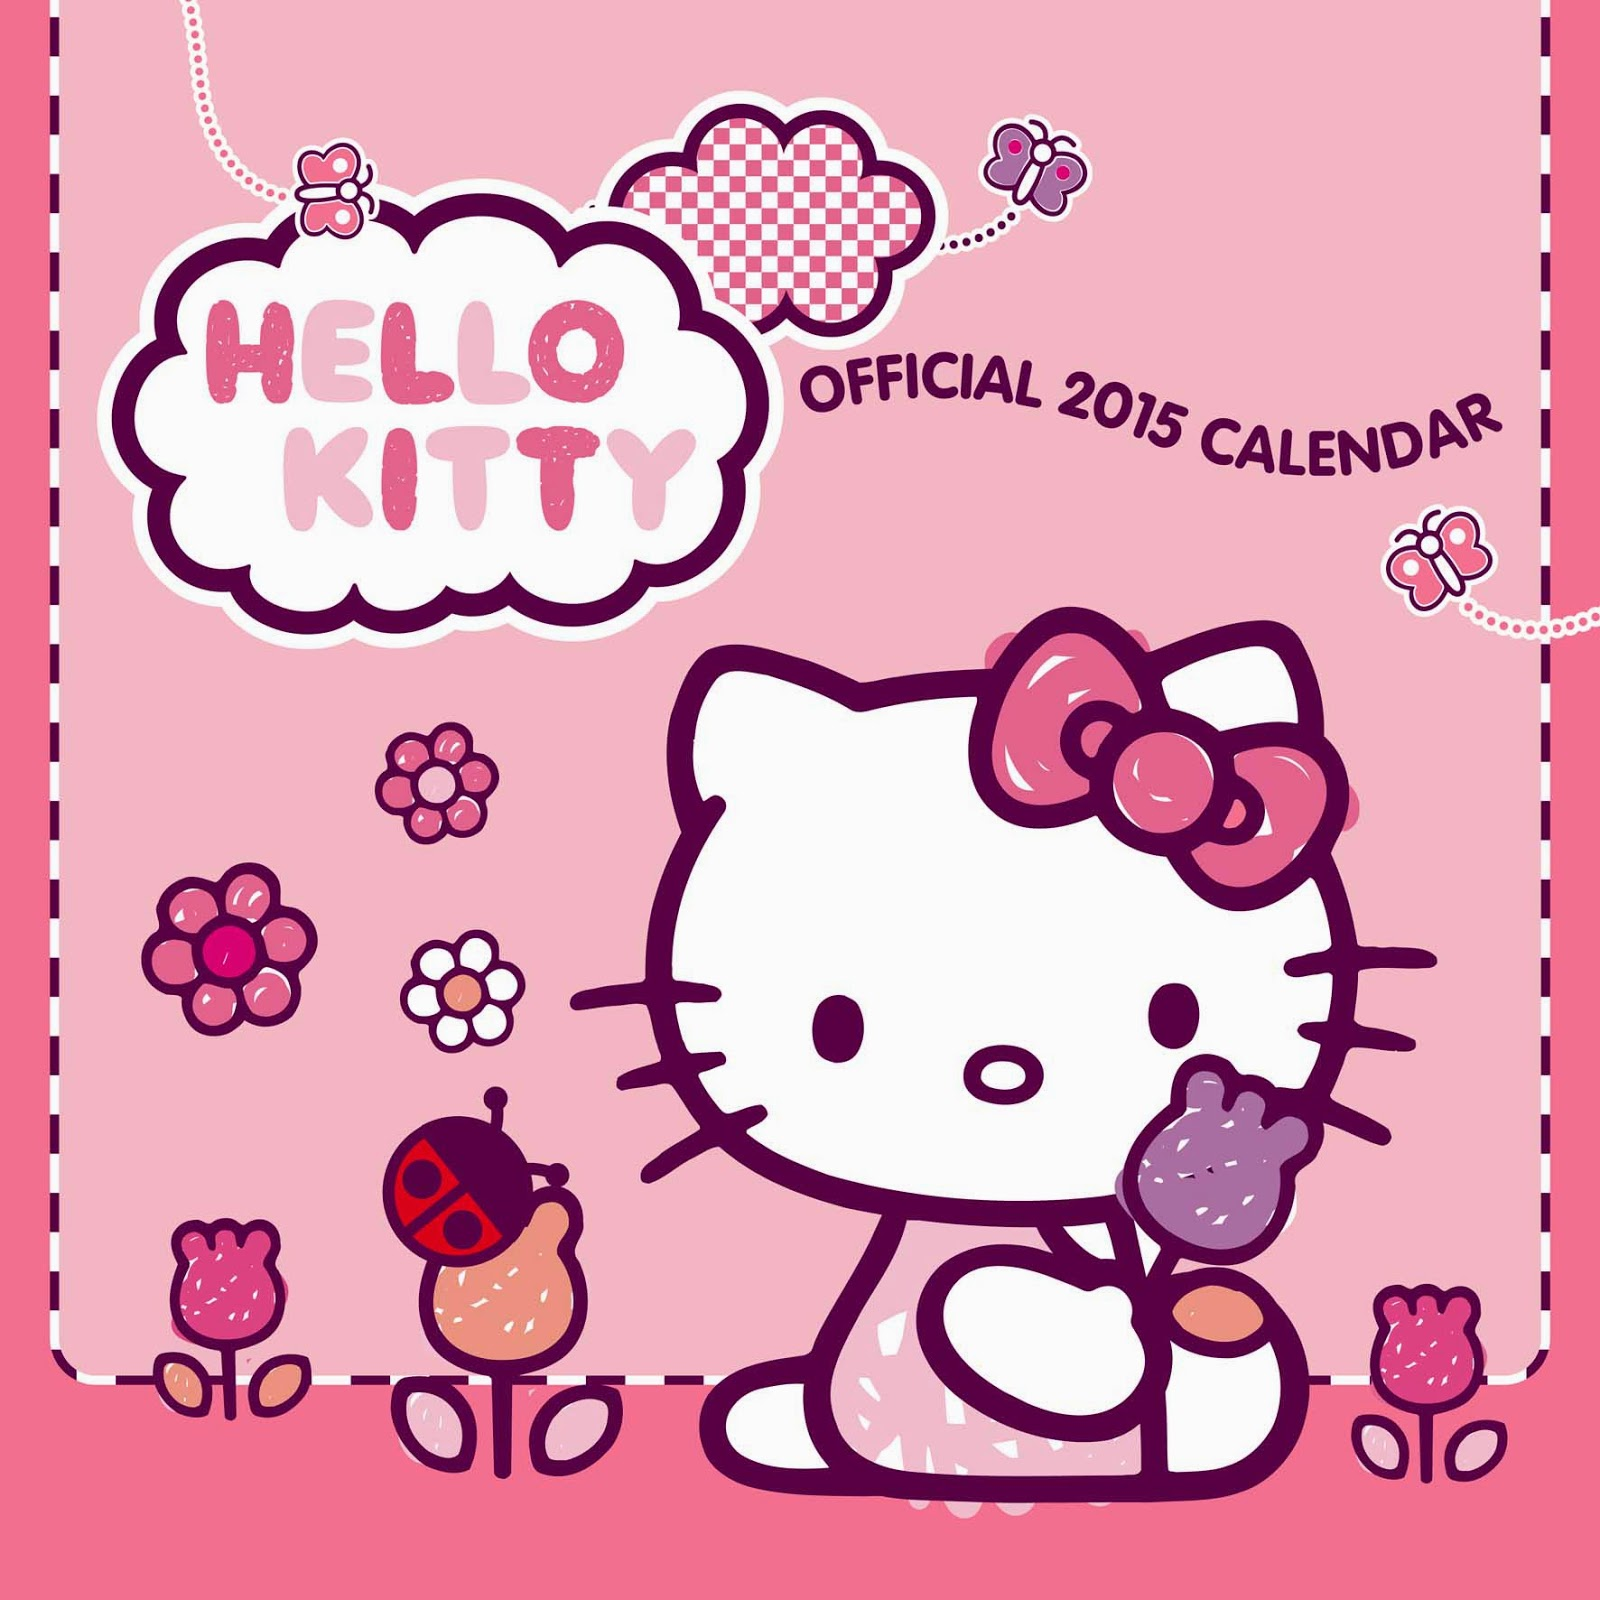 HELLO KITTY 2015 WALLPAPER LUCU Gambar Hello Kitty Kalender 2015